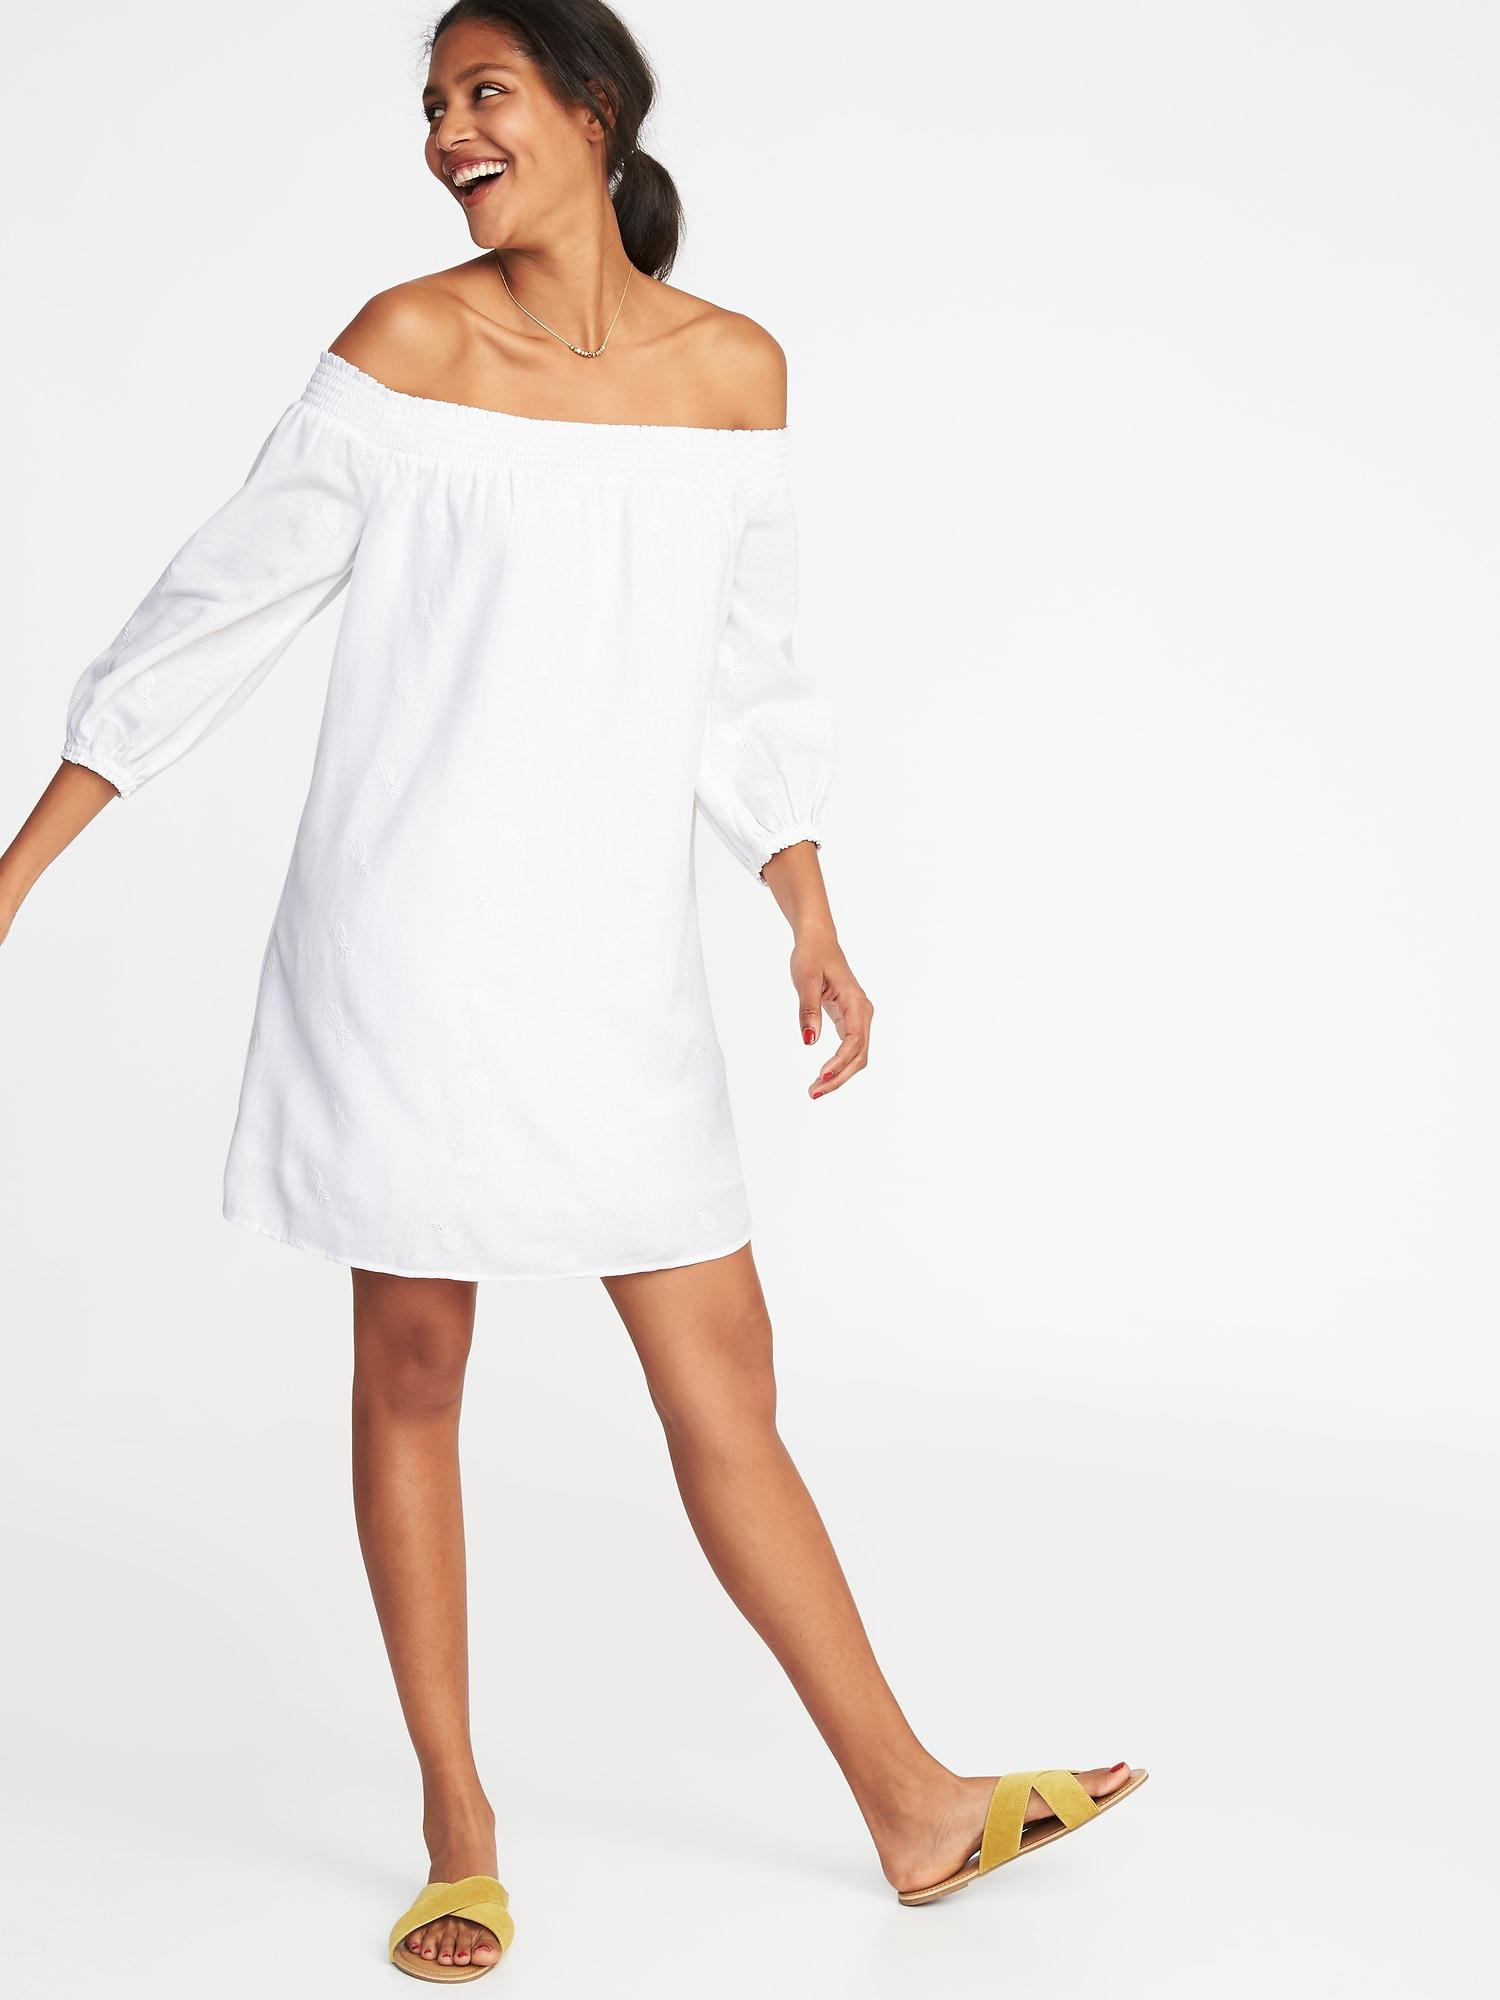 6caee14015f6 Gallery. Previously sold at  Old Navy · Women s Off The Shoulder Dresses ...